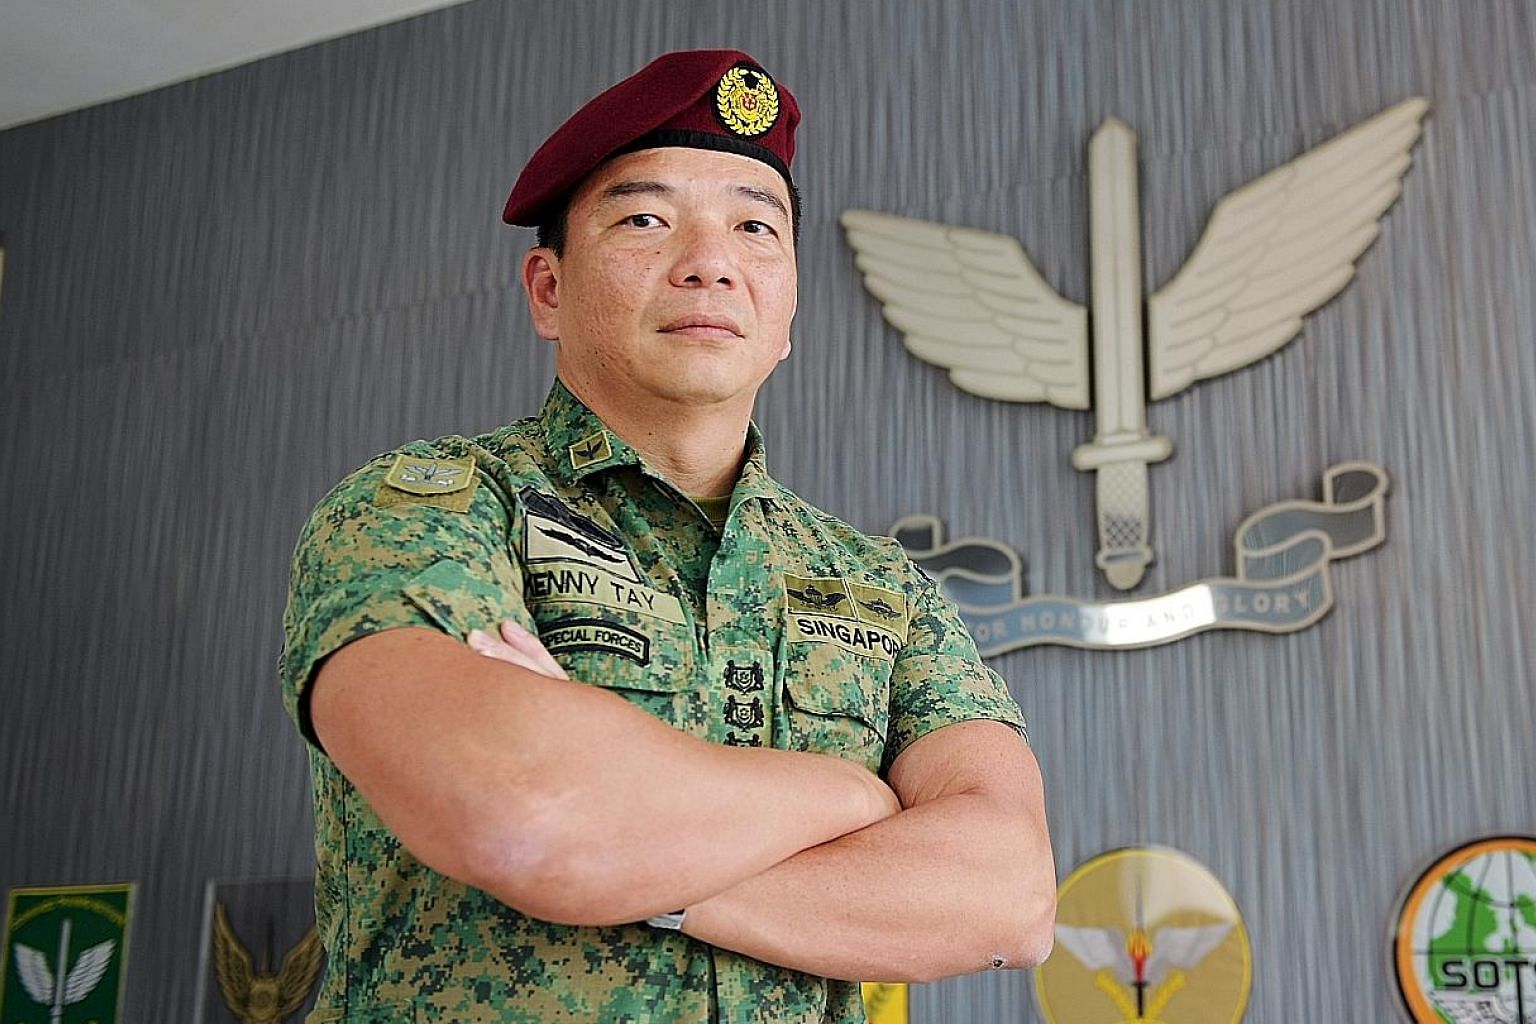 Chief Commando Officer Kenny Tay feels today's soldiers give up more comforts than their predecessors did when they enlist.